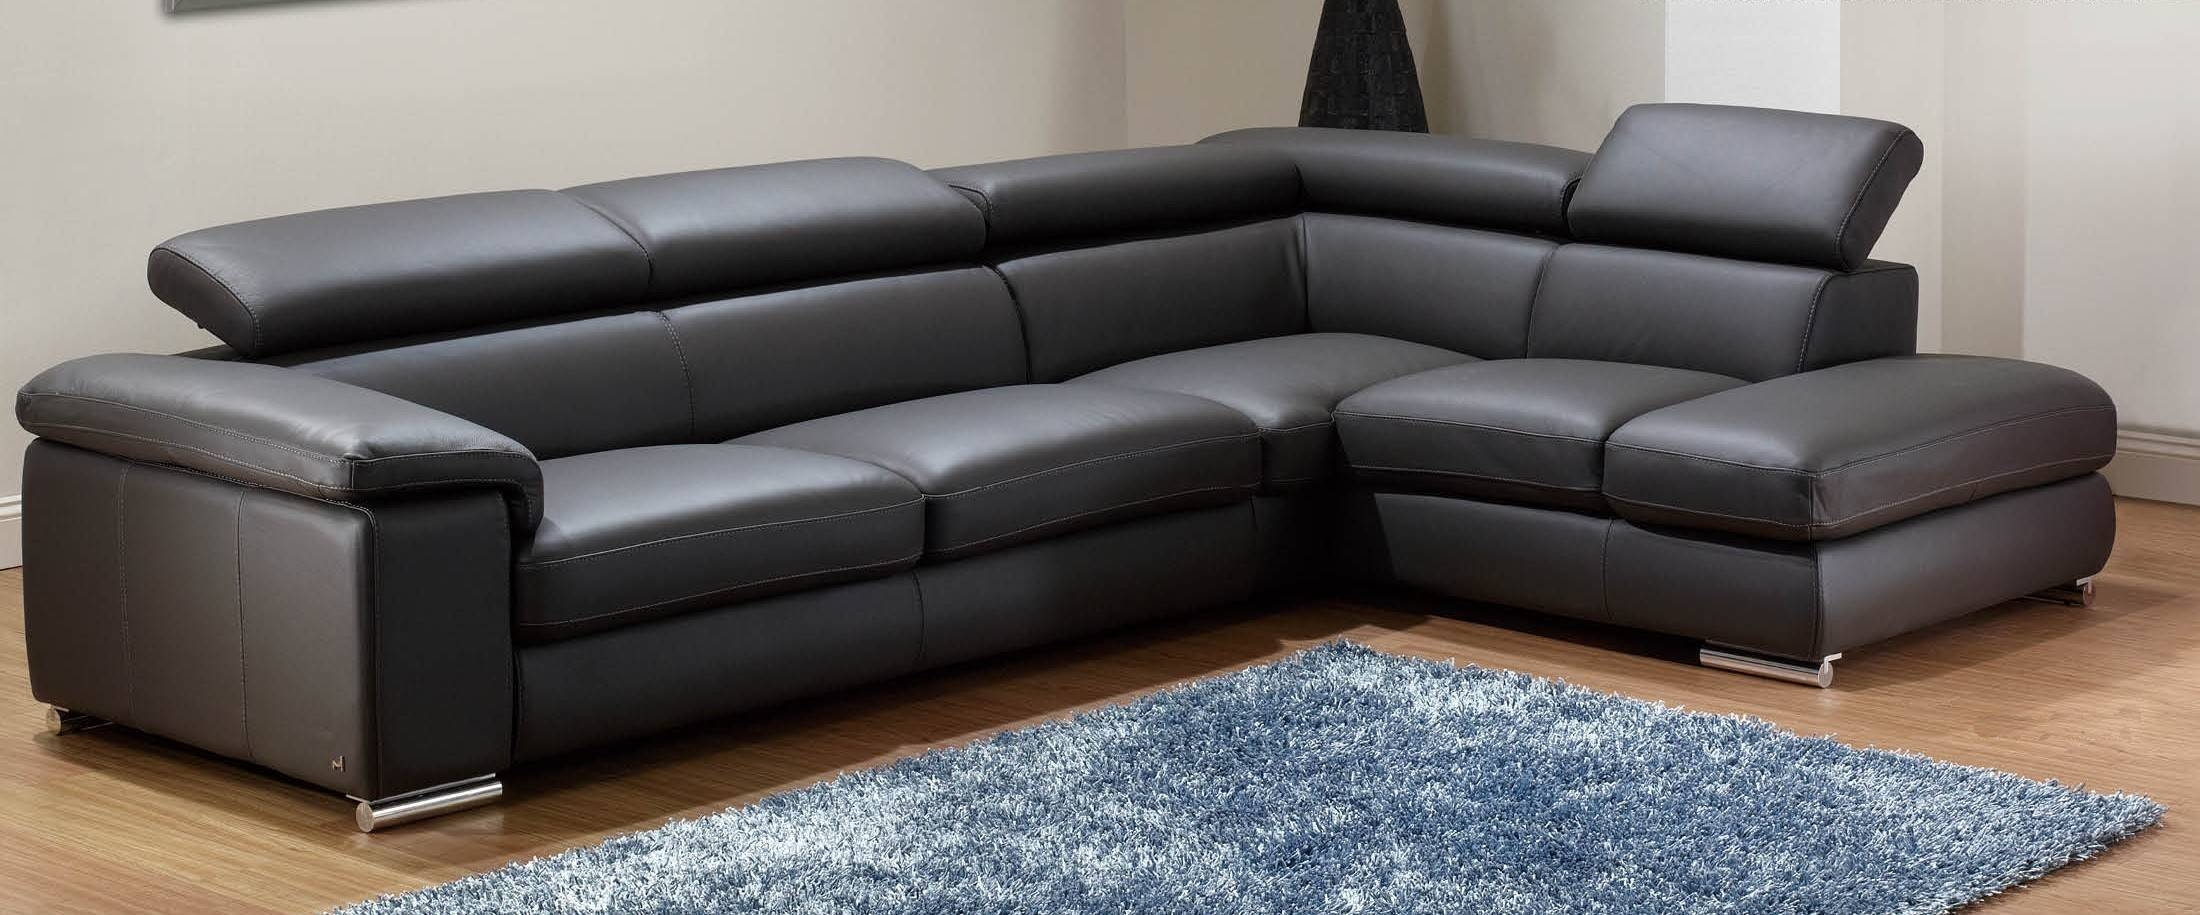 Sofas Center : Modern Sectional Sofas Cheap Way Black Sofa Under throughout Unique Corner Sofas (Image 19 of 30)